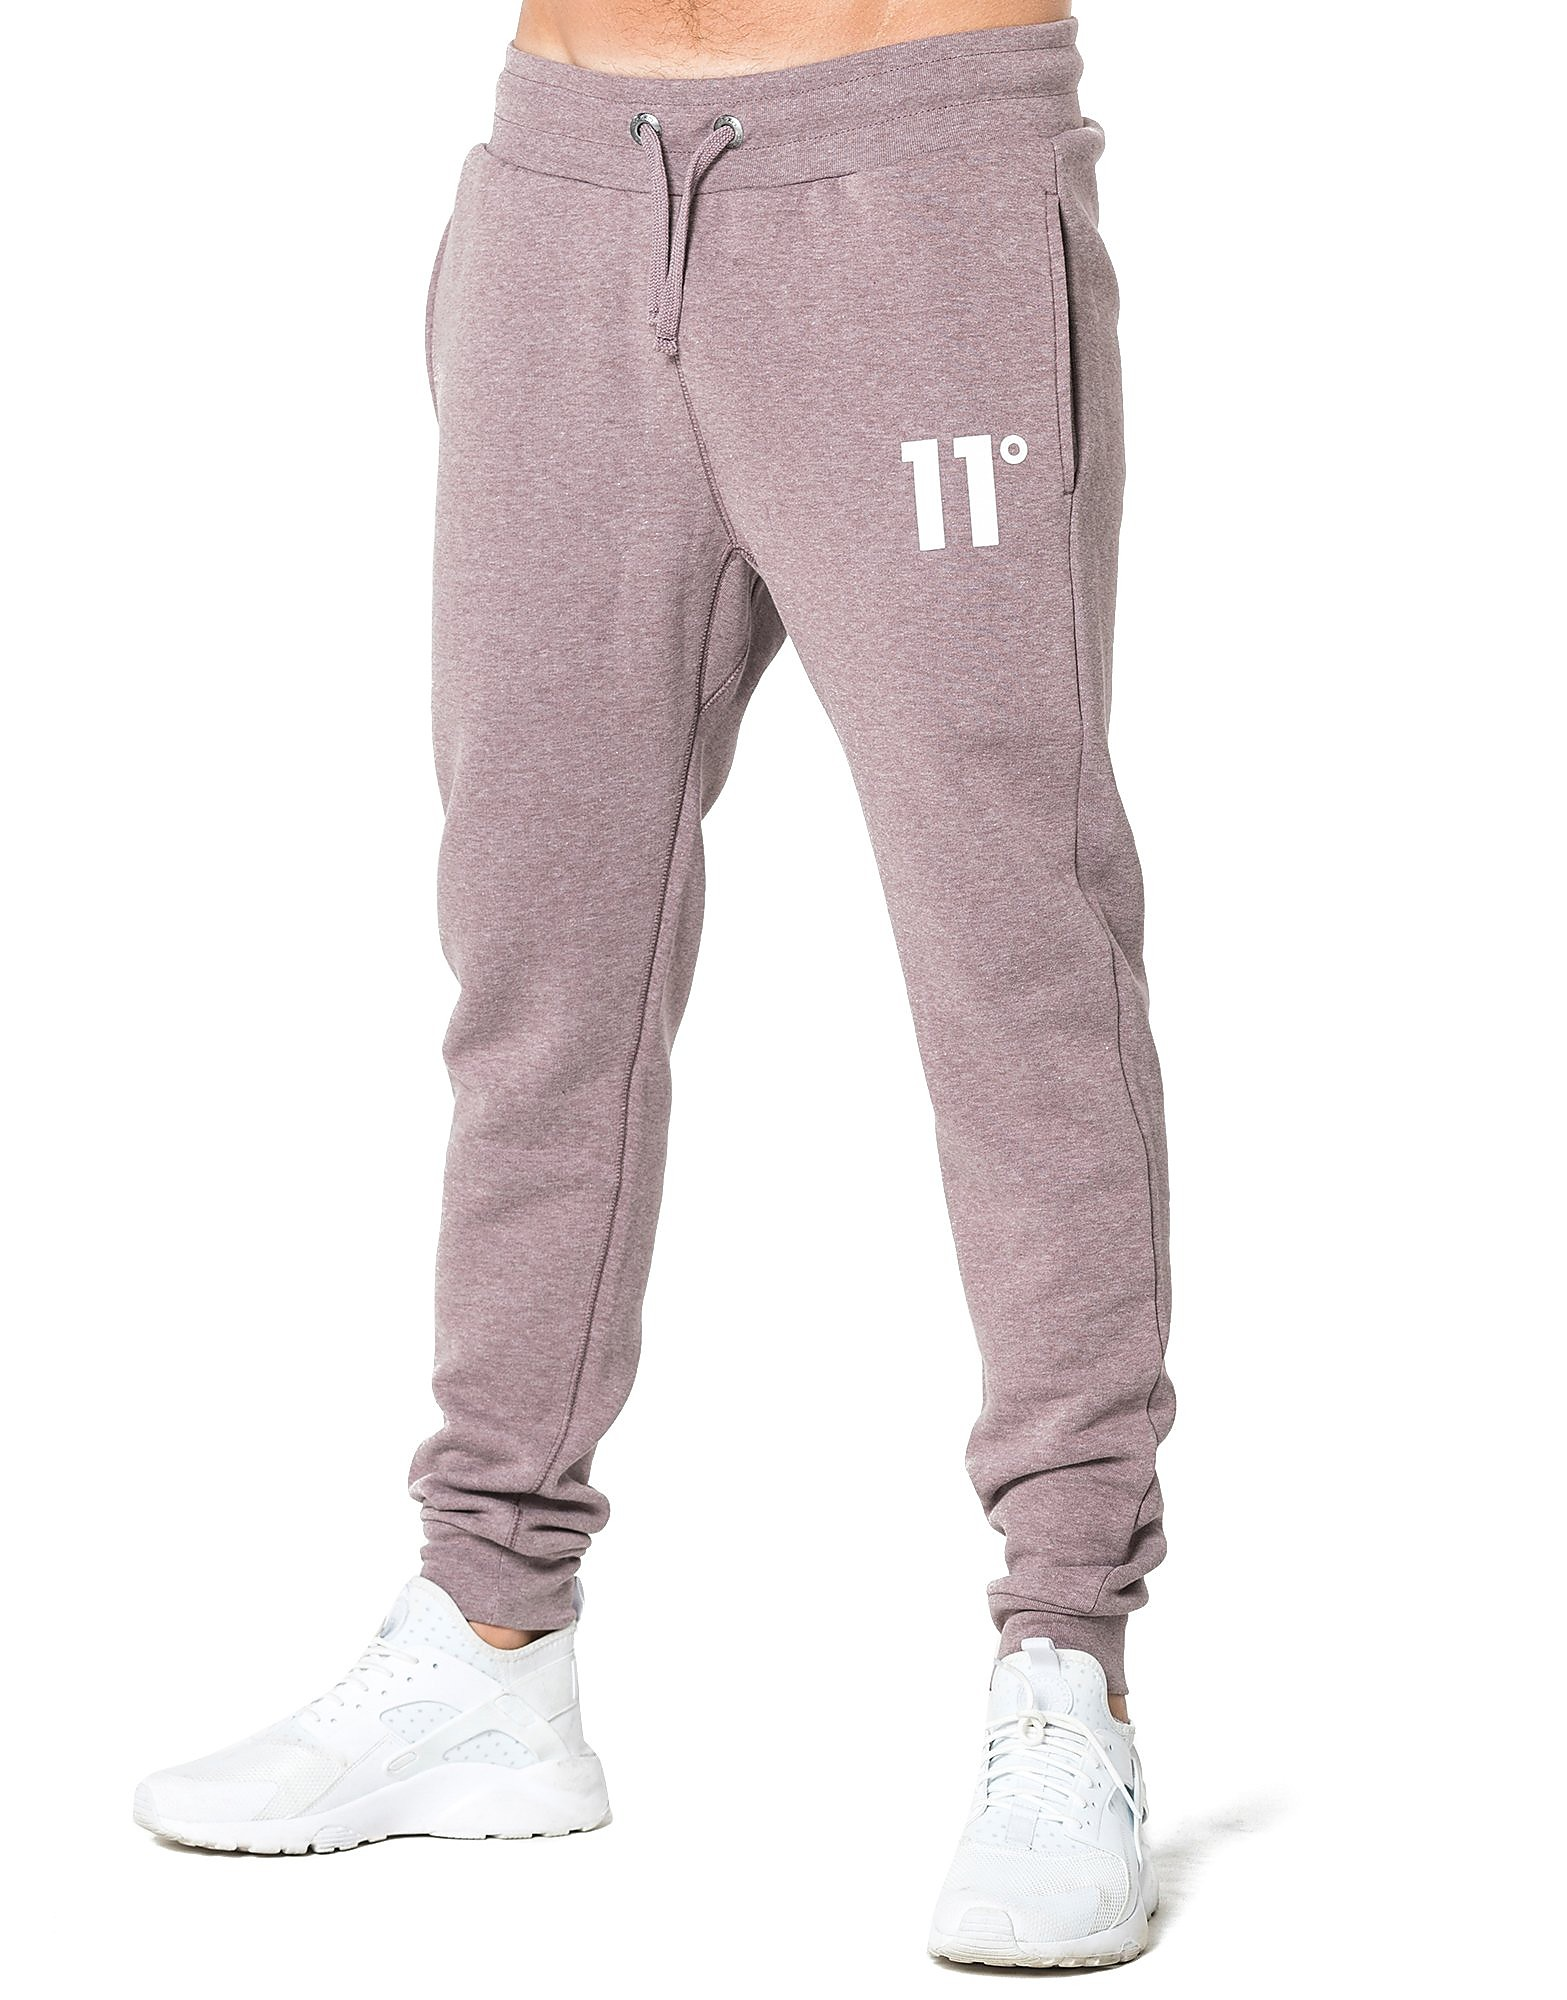 Image de 11 Degrees Joggers Core Homme - Brown, Brown